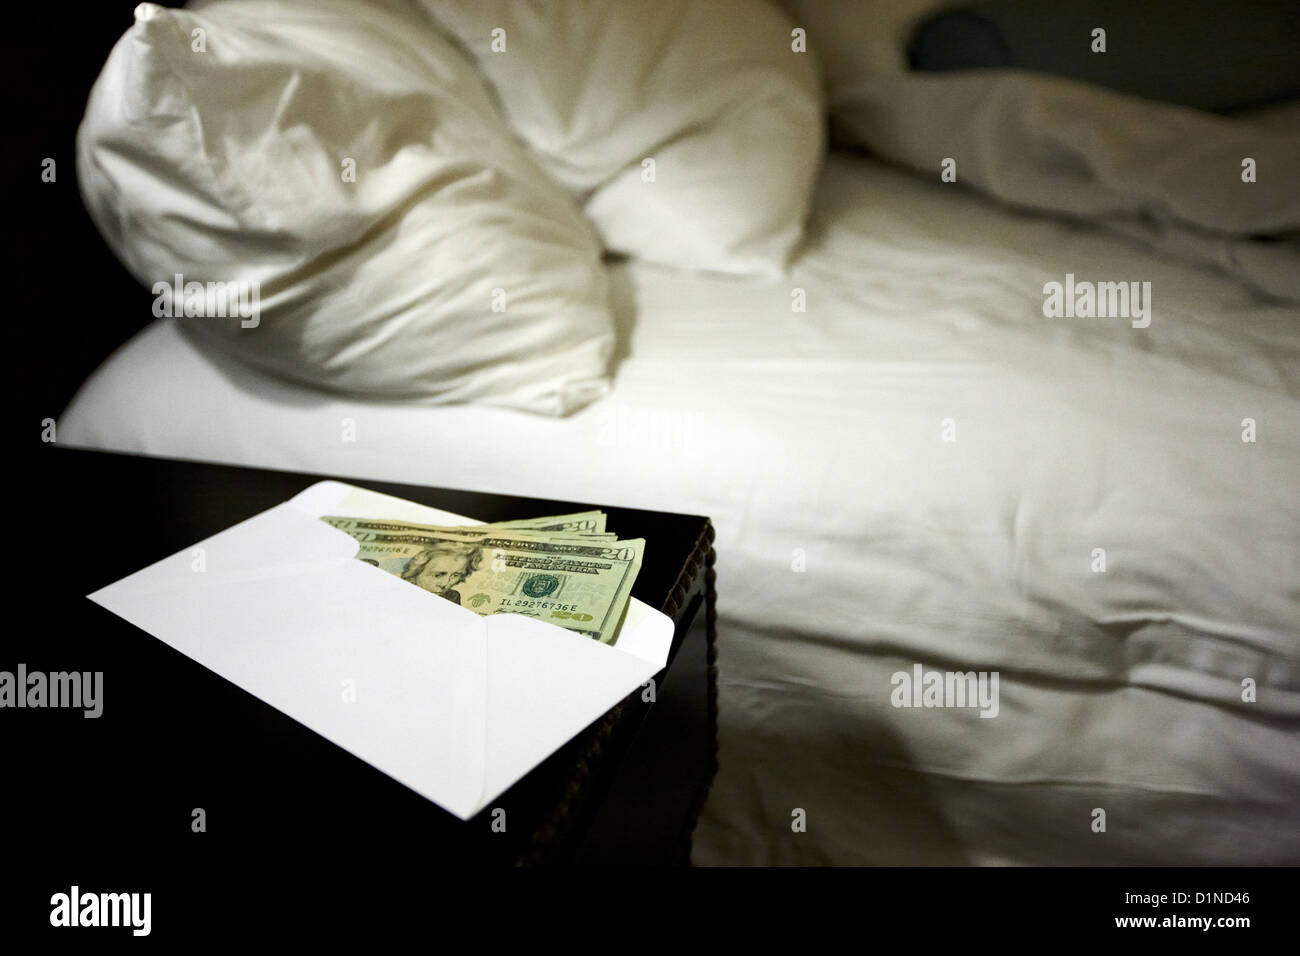 us dollars cash left in an envelope by the side of the bed in a hotel room in Las Vegas Nevada USA - Stock Image